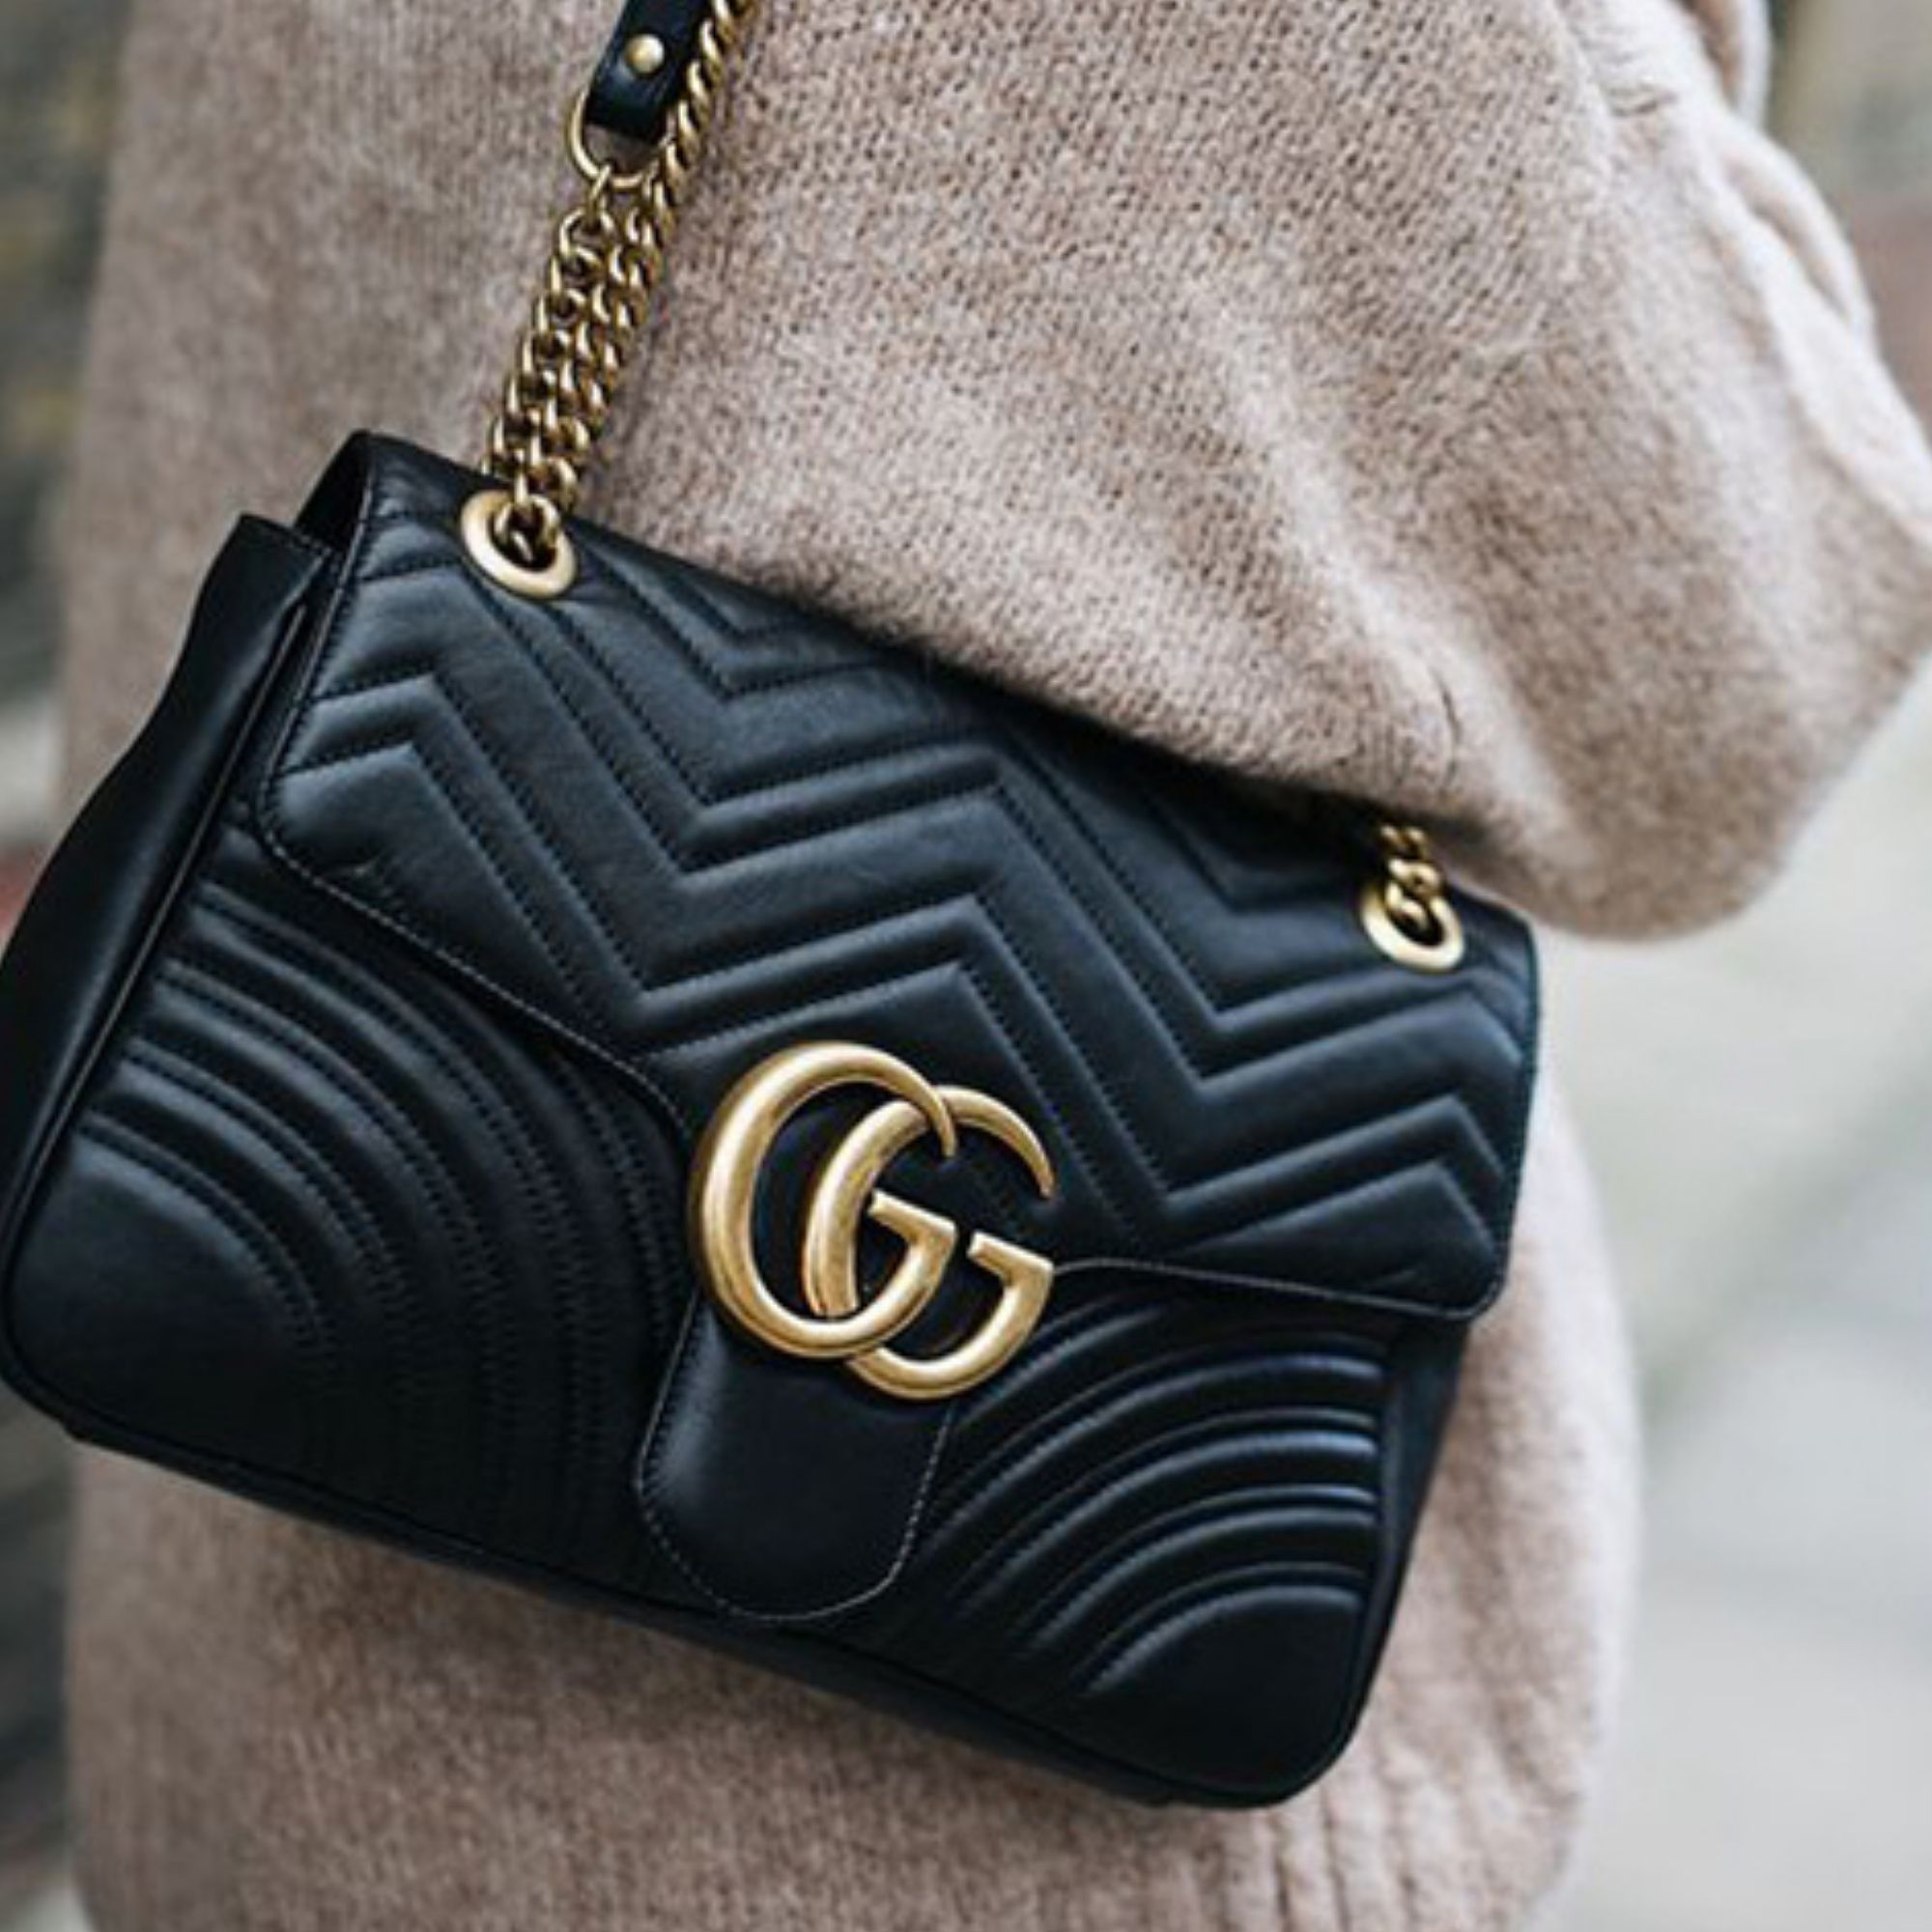 Black Gucci bag with gold hardware